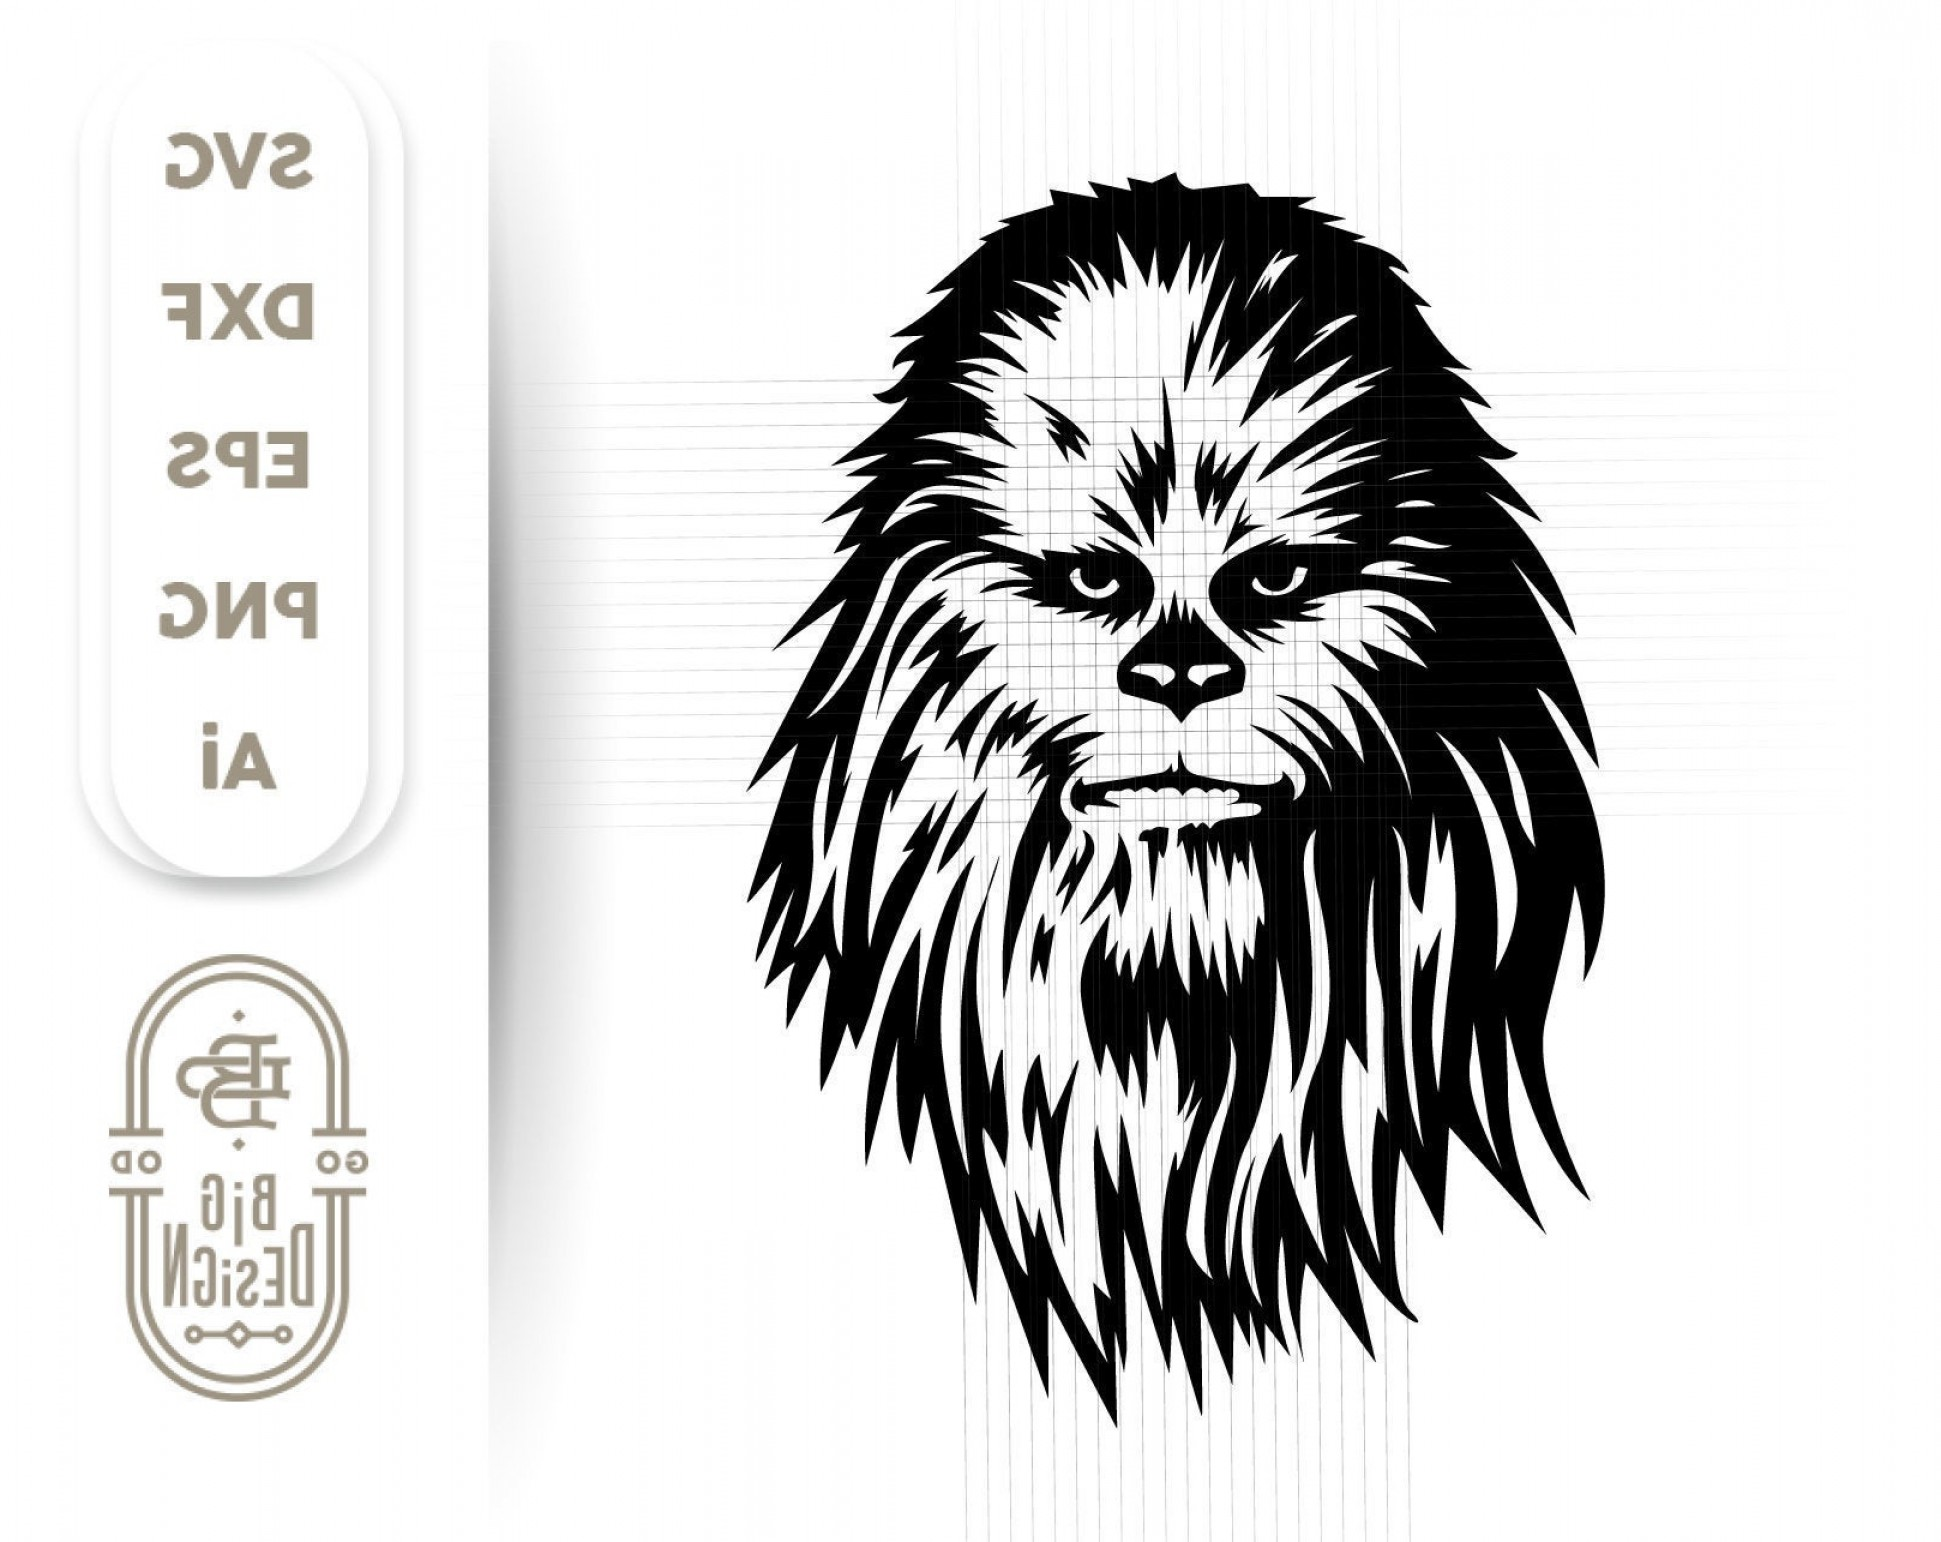 clip art royalty free stock Chewbacca clipart vector. Svg star wars savoyuptown.